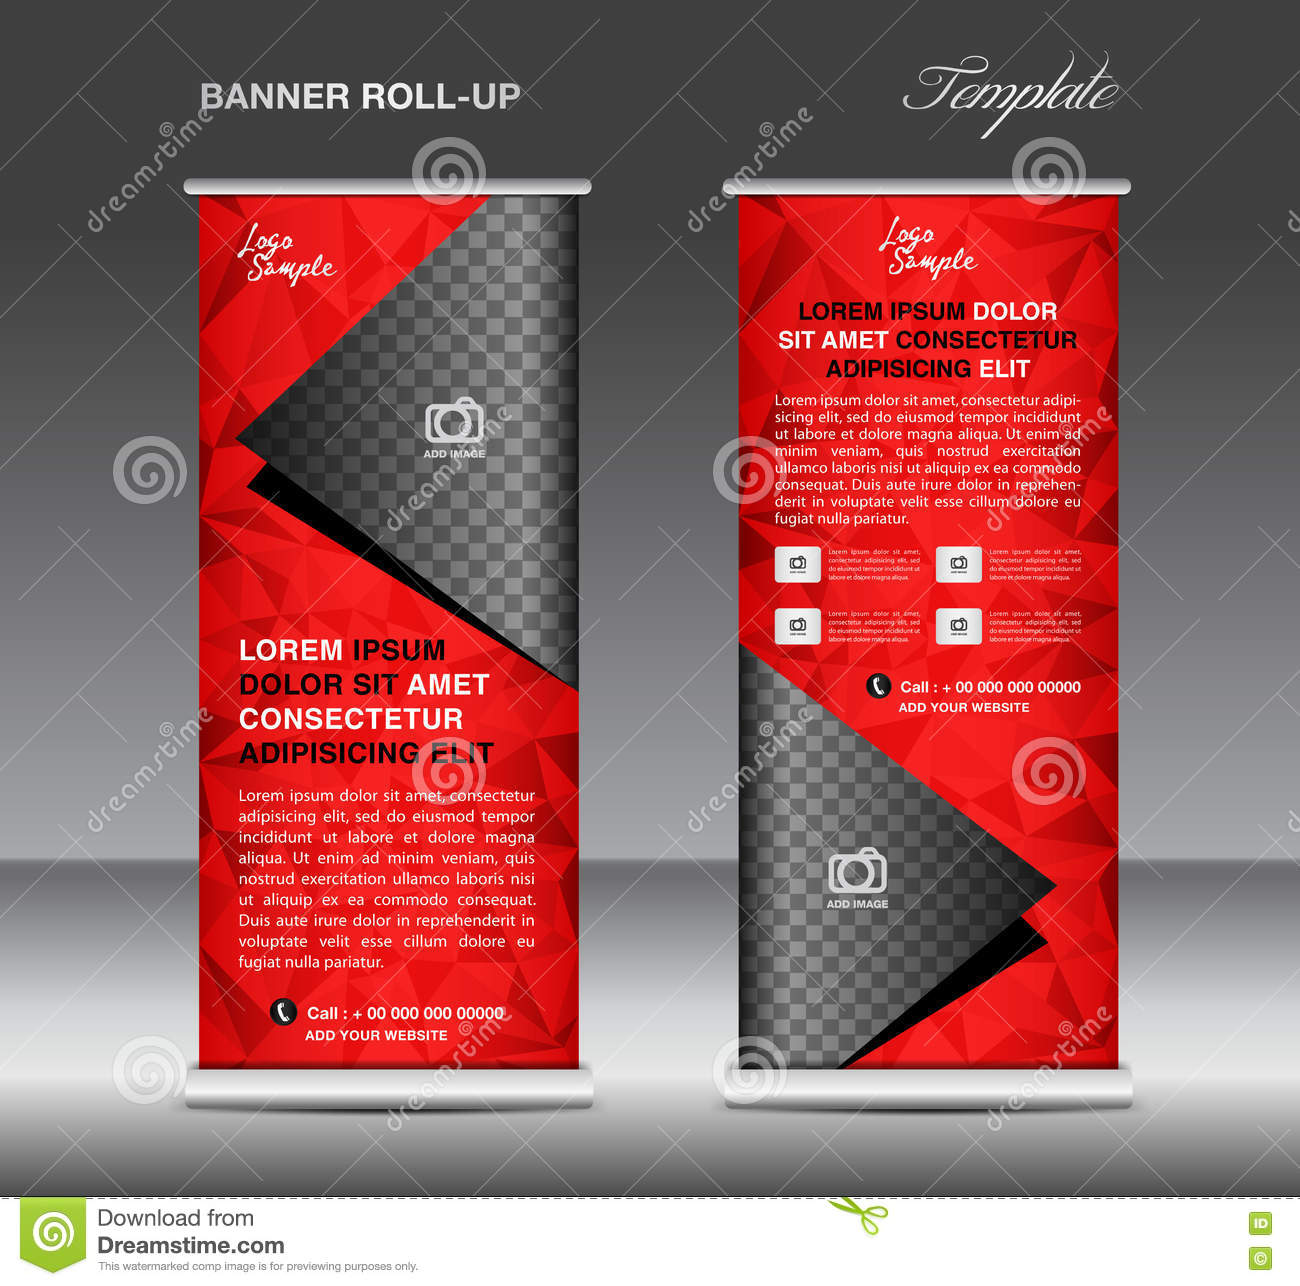 Exhibition Booth Design Vector : Red roll up banner template vector stand flyer design